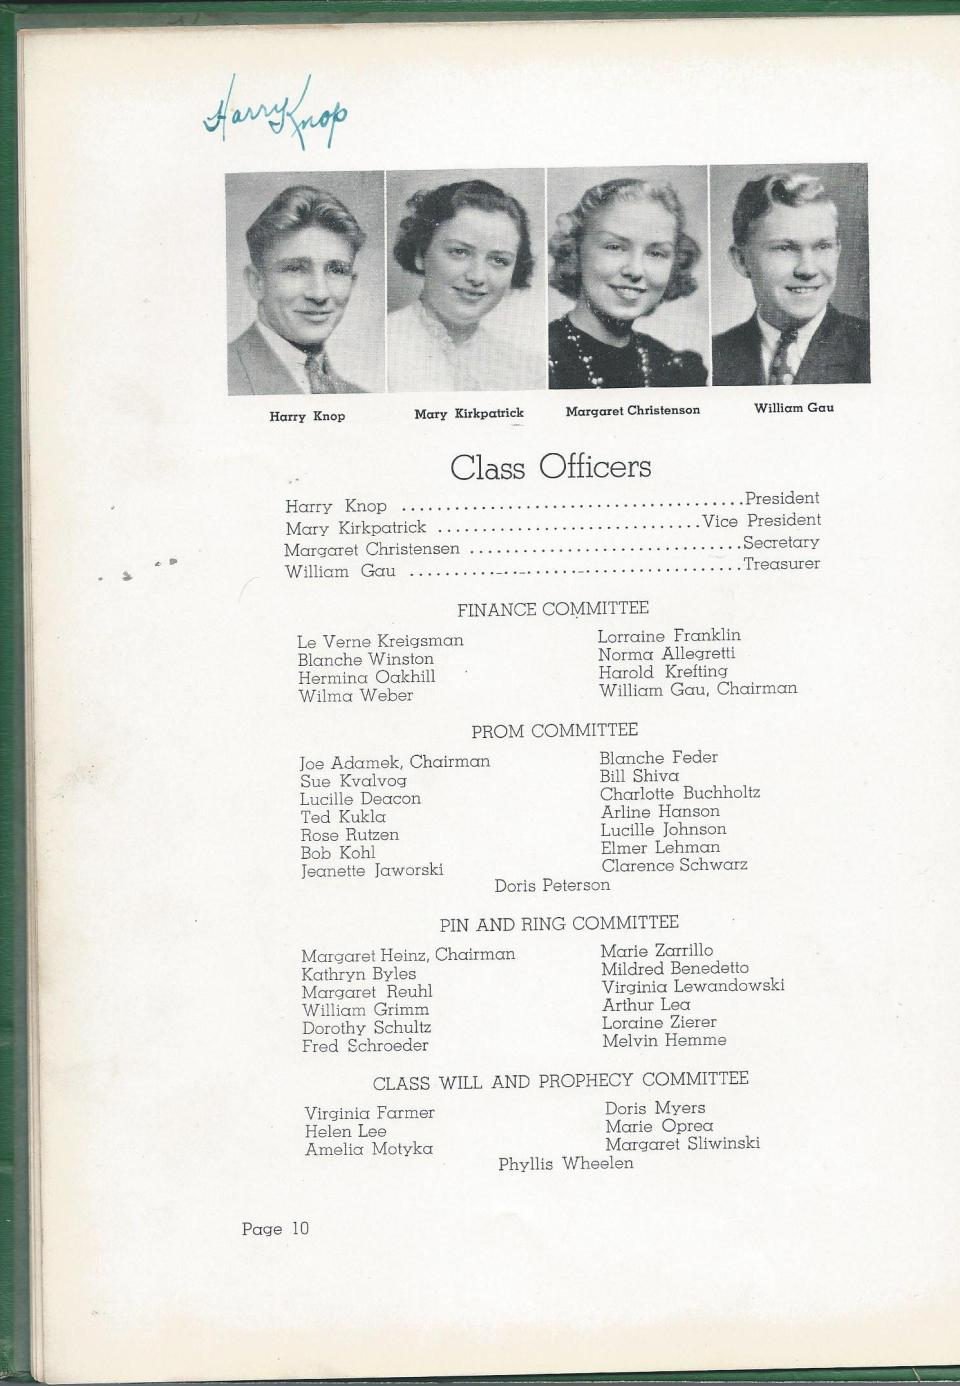 1938 HS Yearbook pg 10